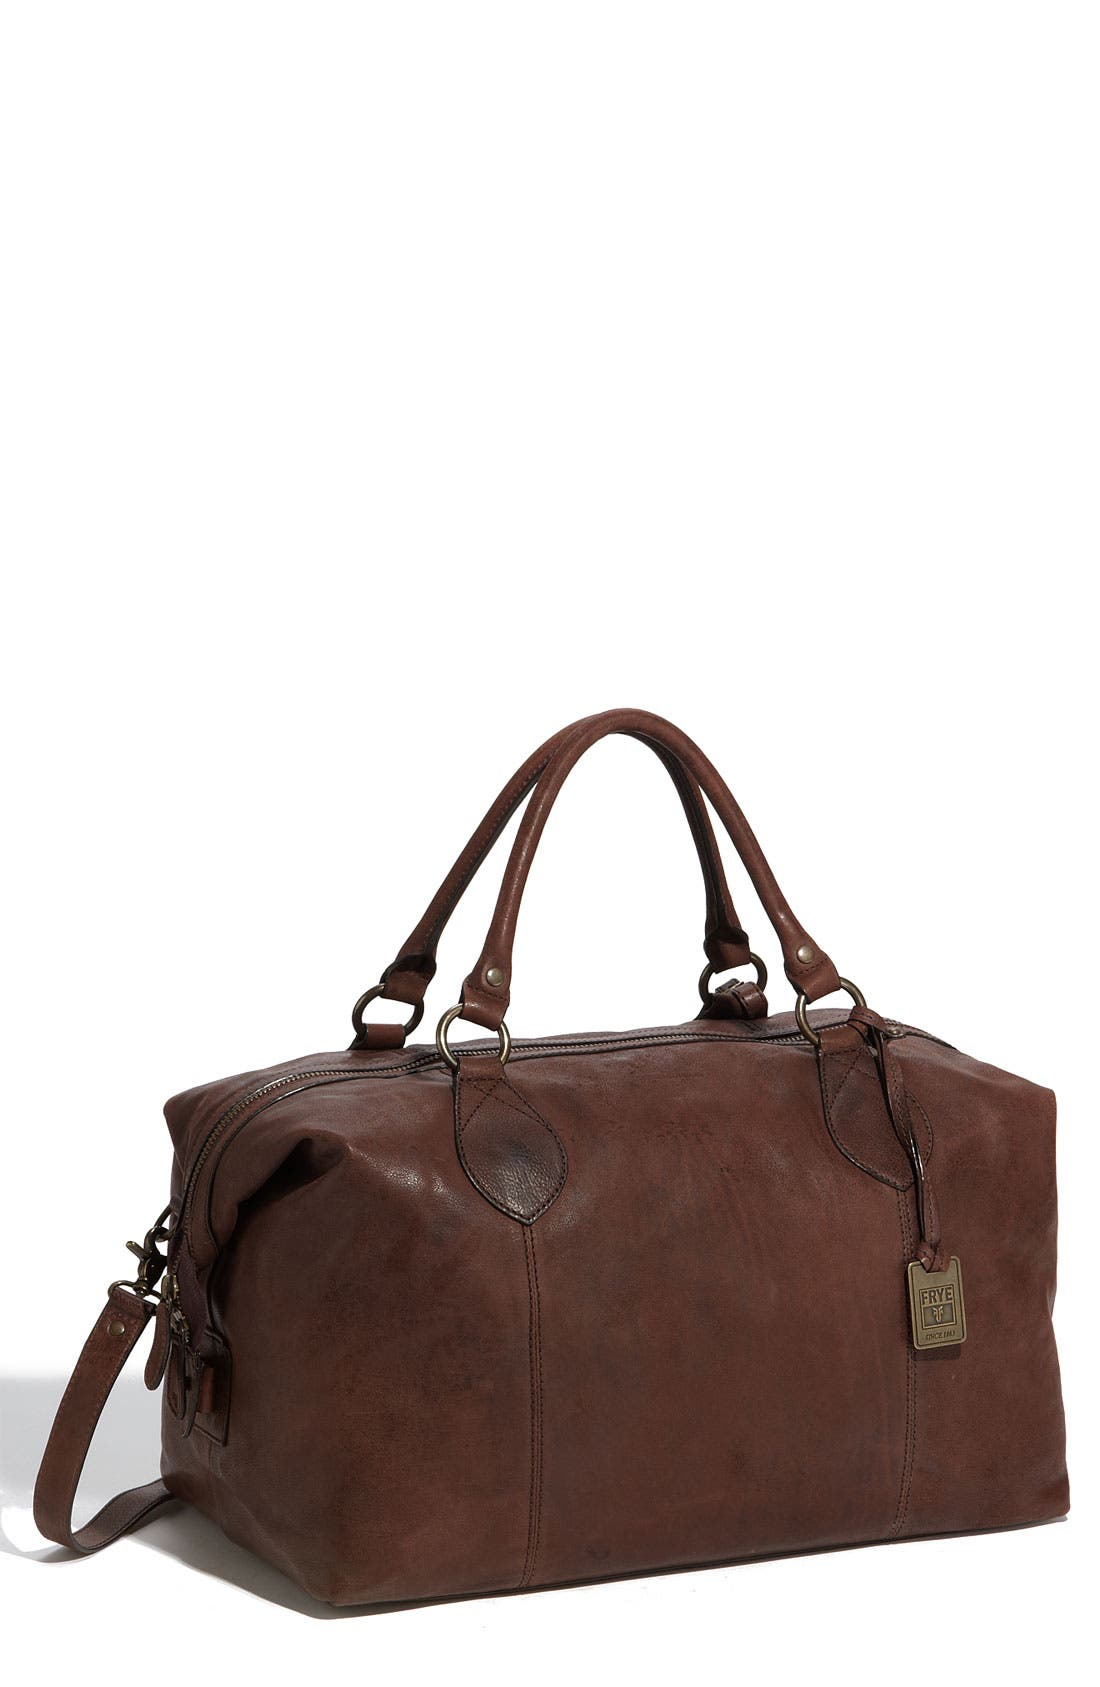 Alternate Image 1 Selected - Frye 'Logan' Leather Overnight Bag